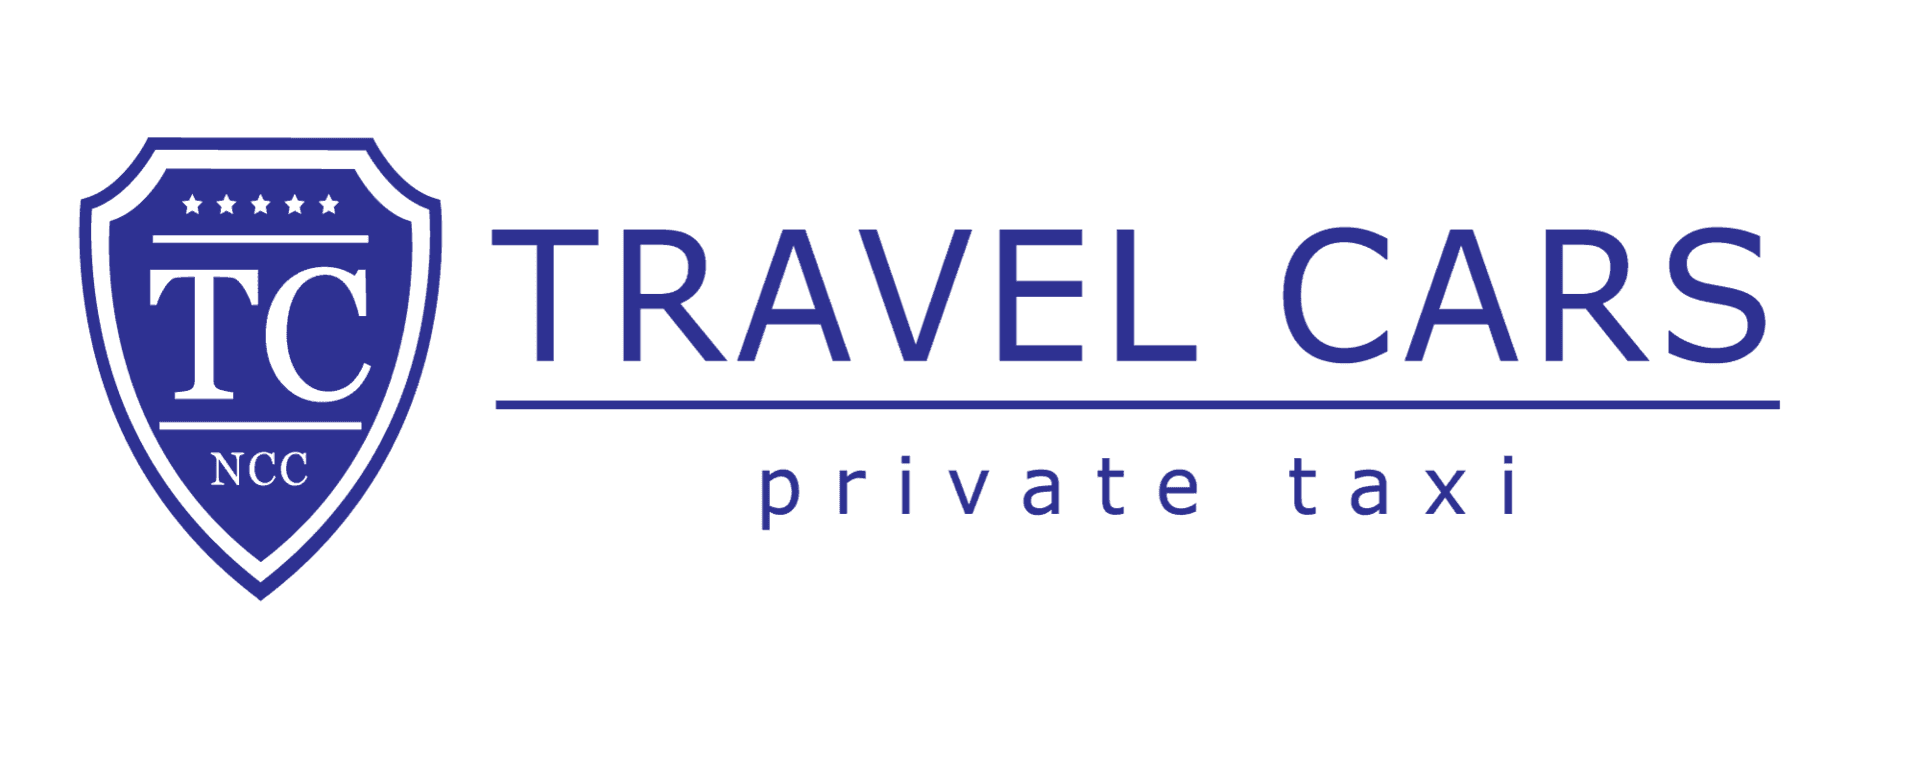 TRAVEL CARS - NCC & TAXI PRIVATO - LOGO